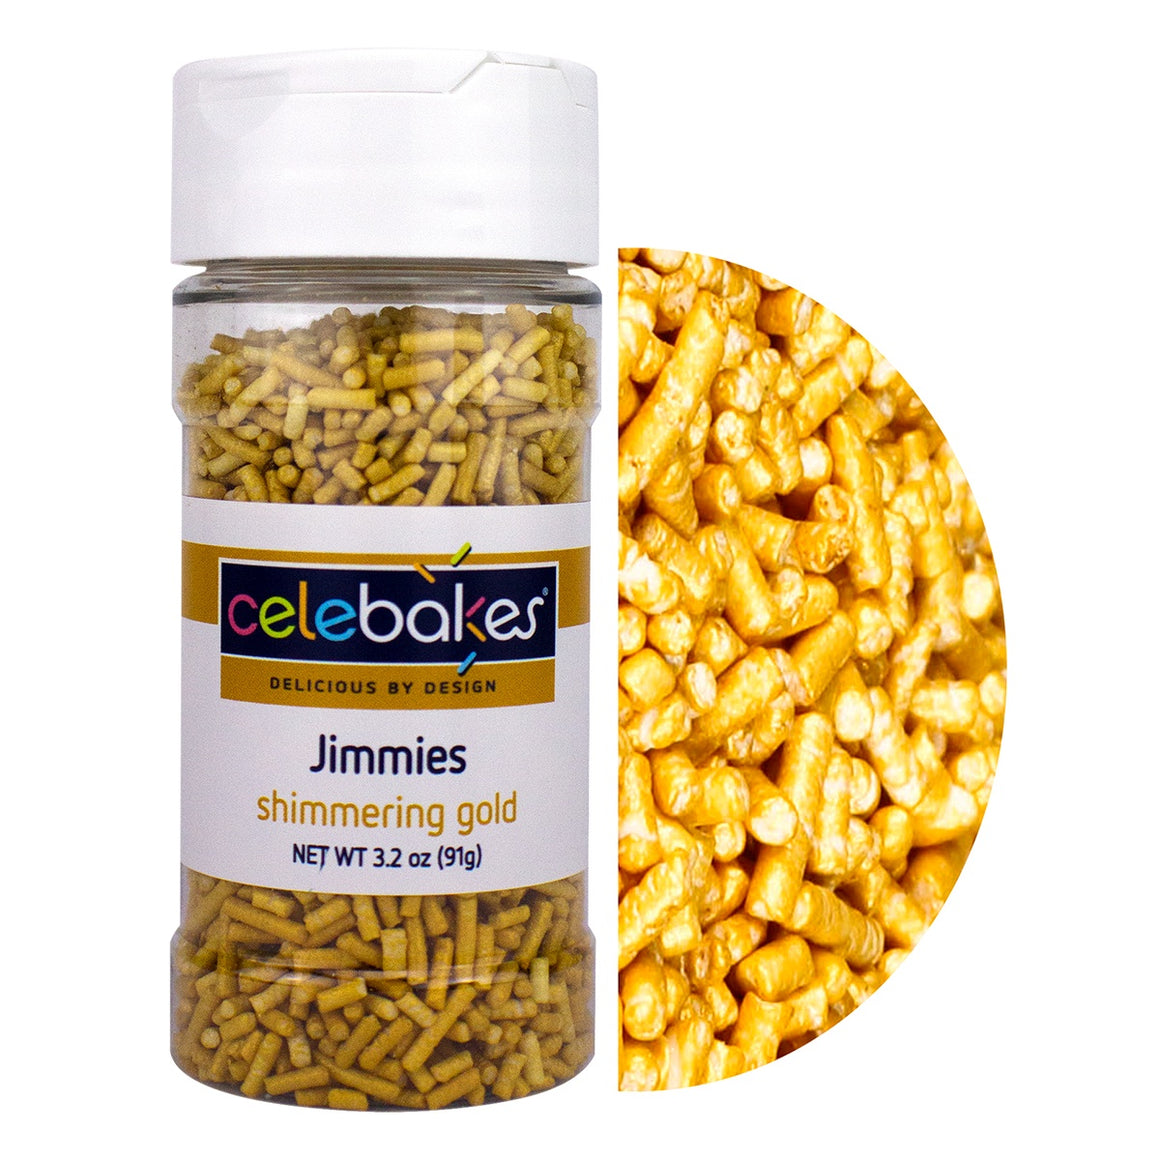 Celebakes Shimmering Gold Jimmies